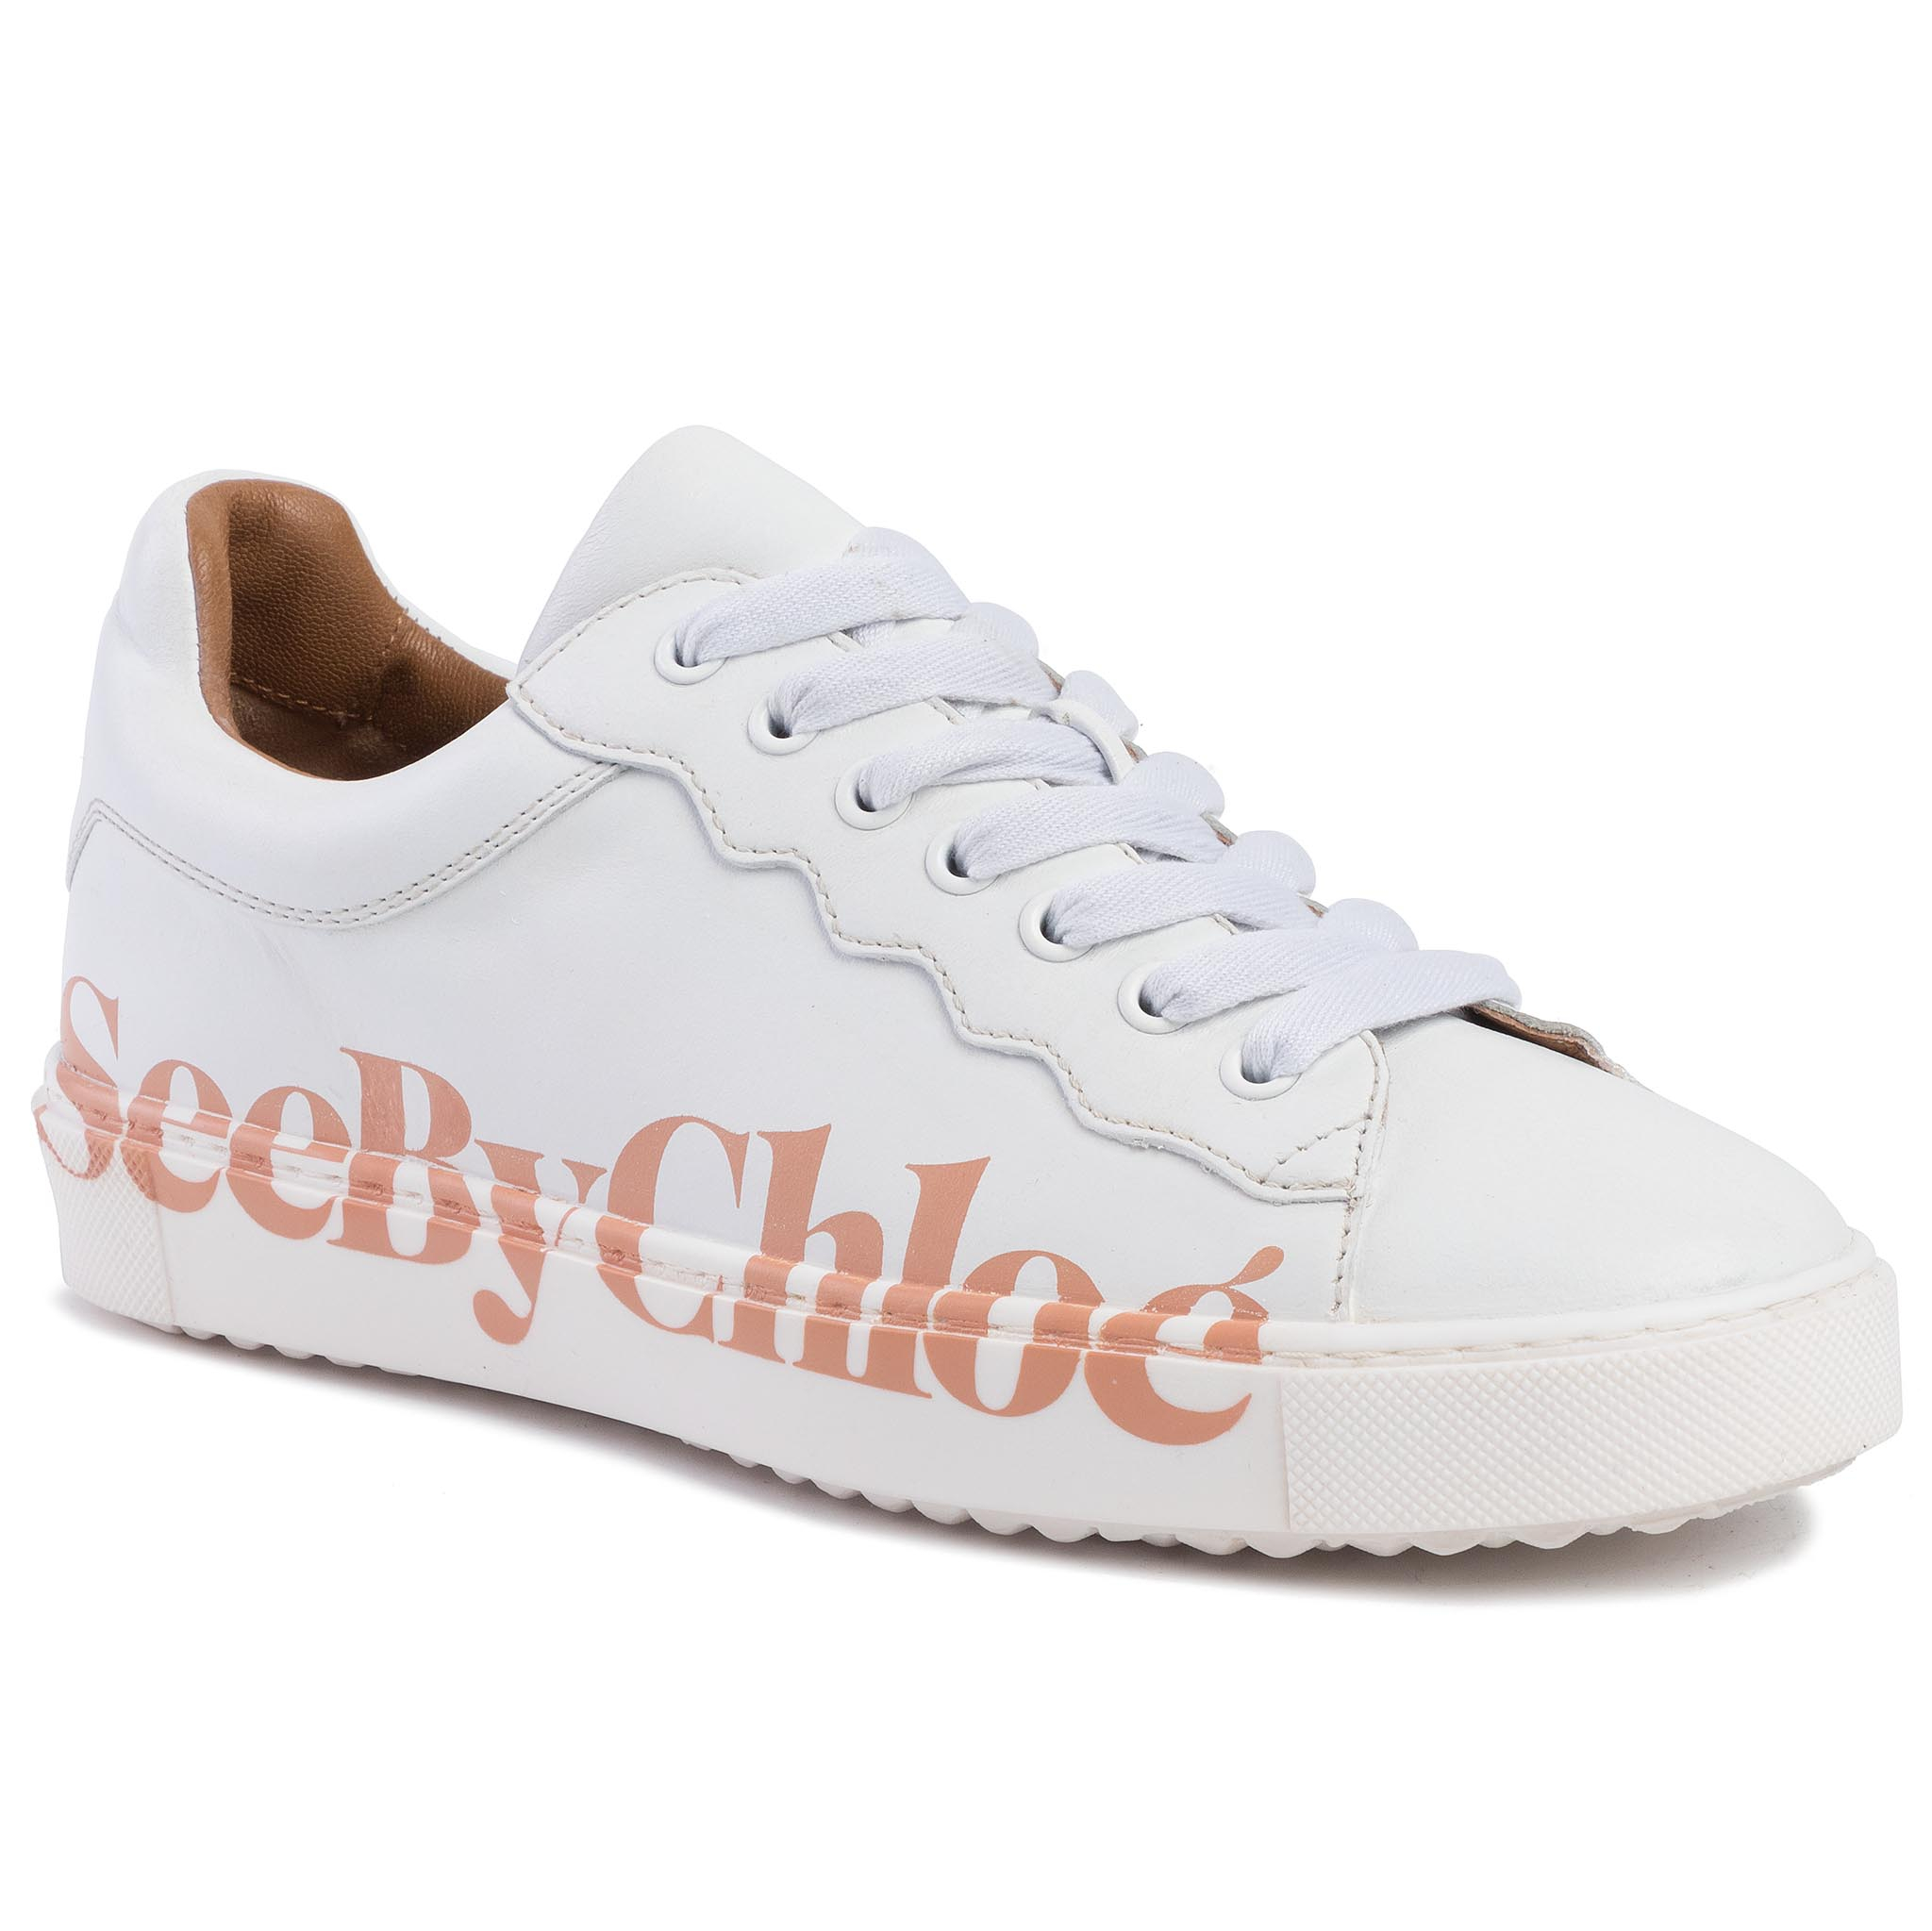 Image of Sneakers SEE BY CHLOÉ - SB33125A Bianco/Logo Pink 101